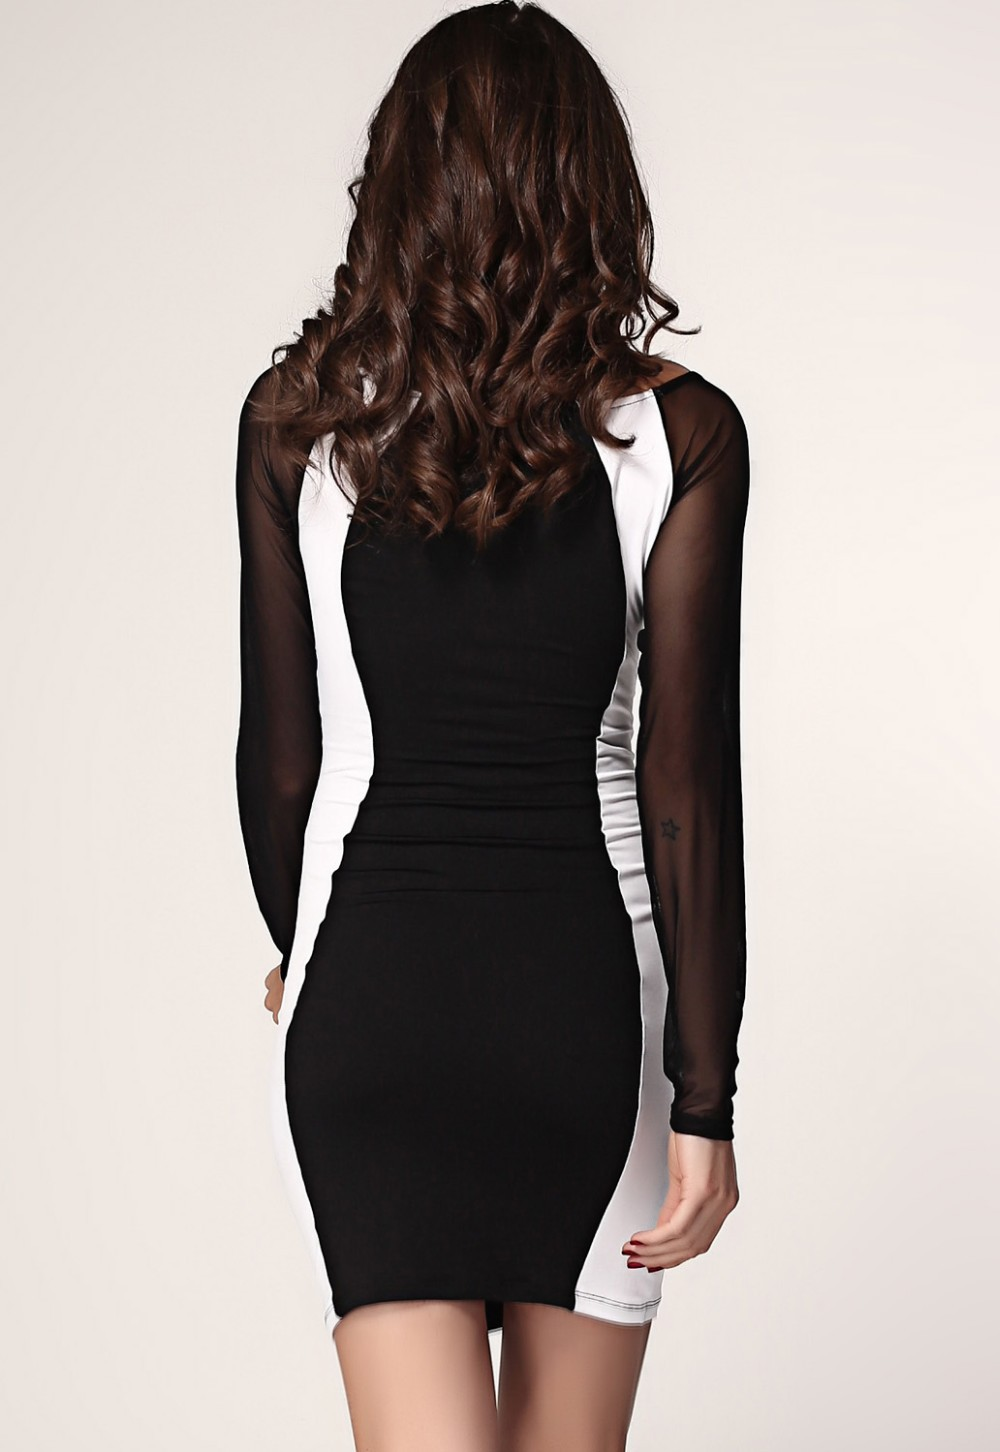 Black-White-Hourglass-Mesh-Long-Sleeves-Bodycon-Dress-LC2970-11691